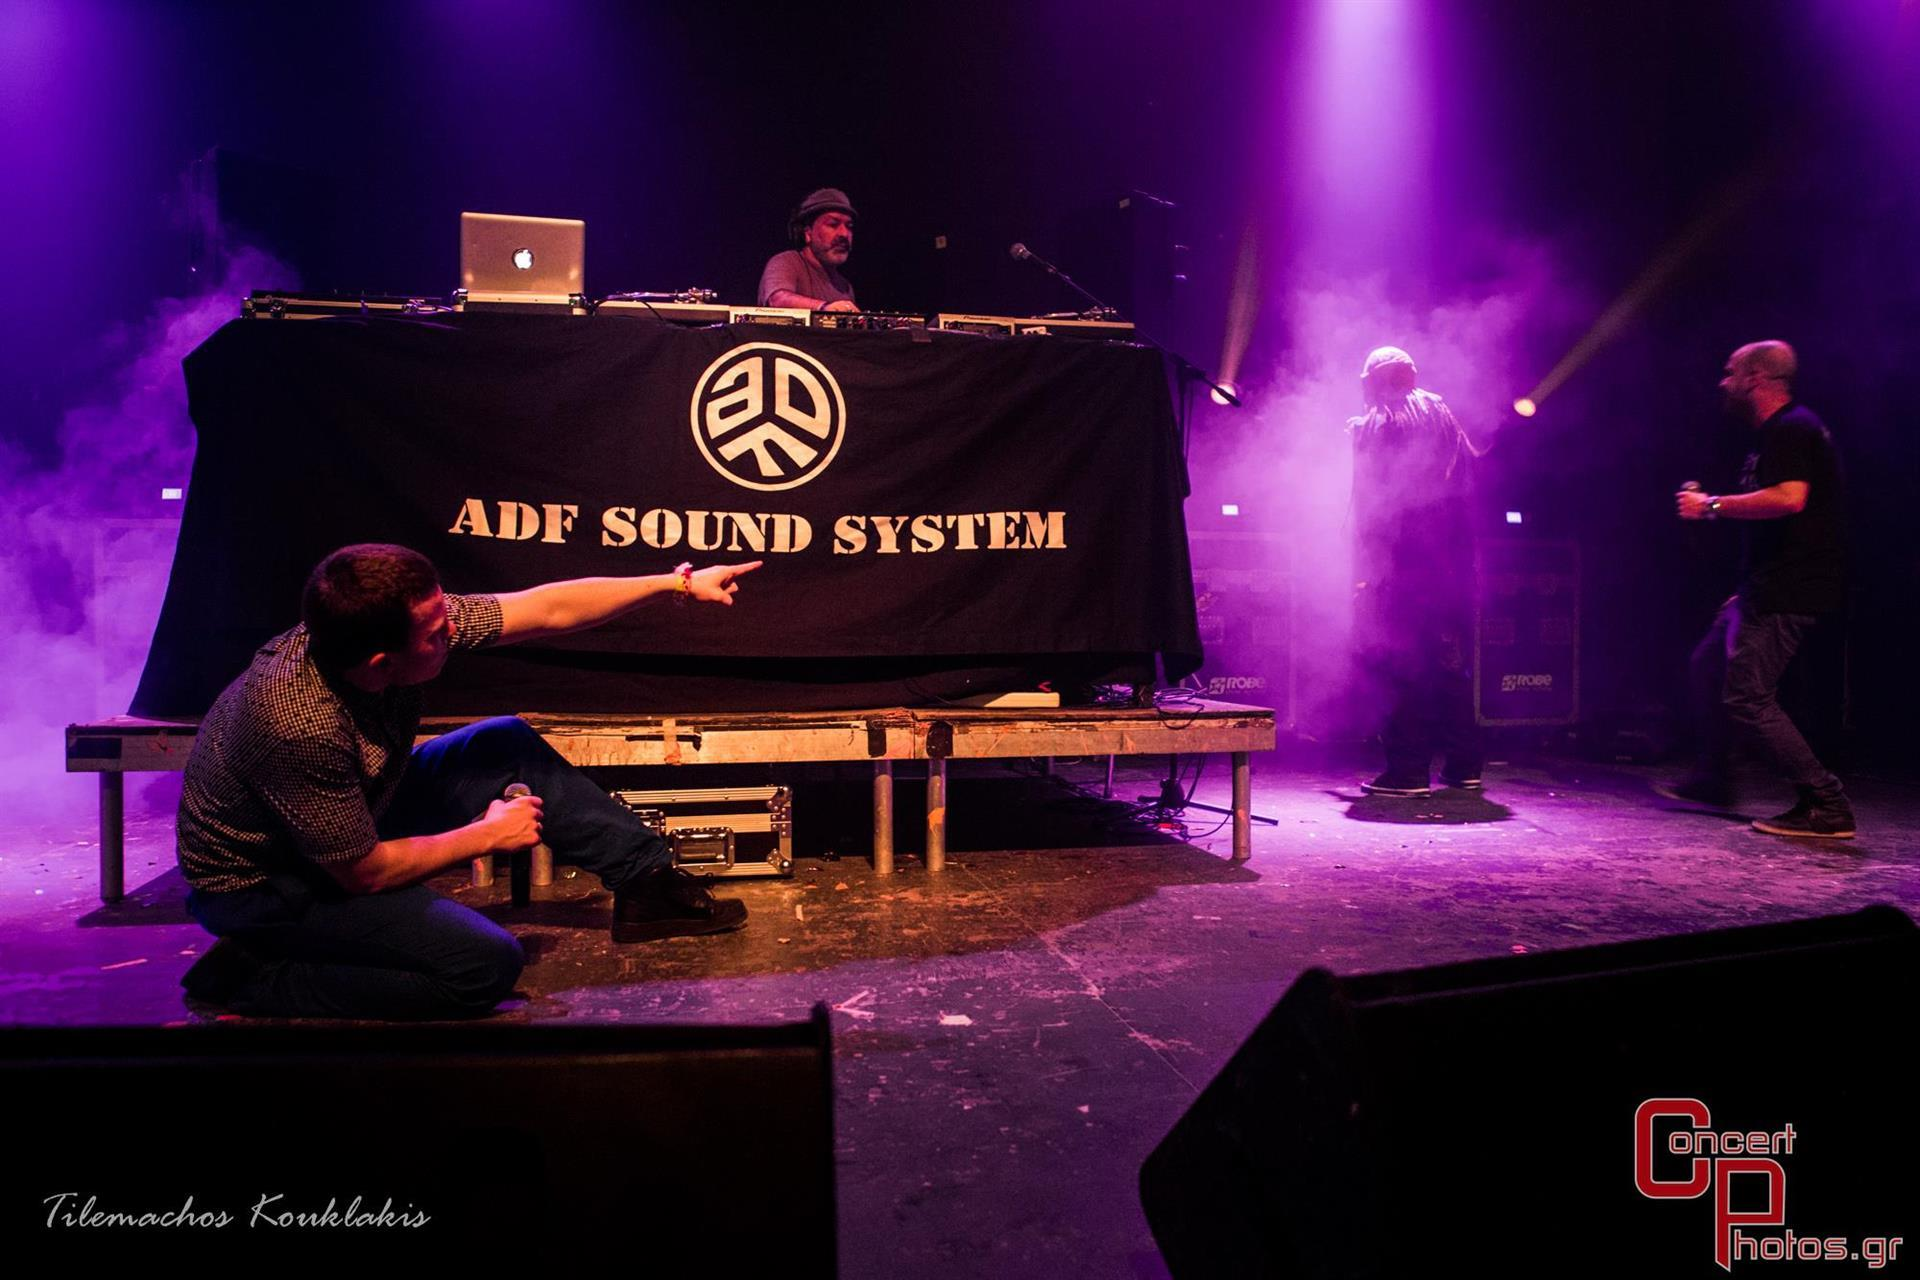 ASIAN DUB FOUNDATION Gagarin-ASIAN DUB FOUNDATION Gagarin photographer:  - 4L6A4755